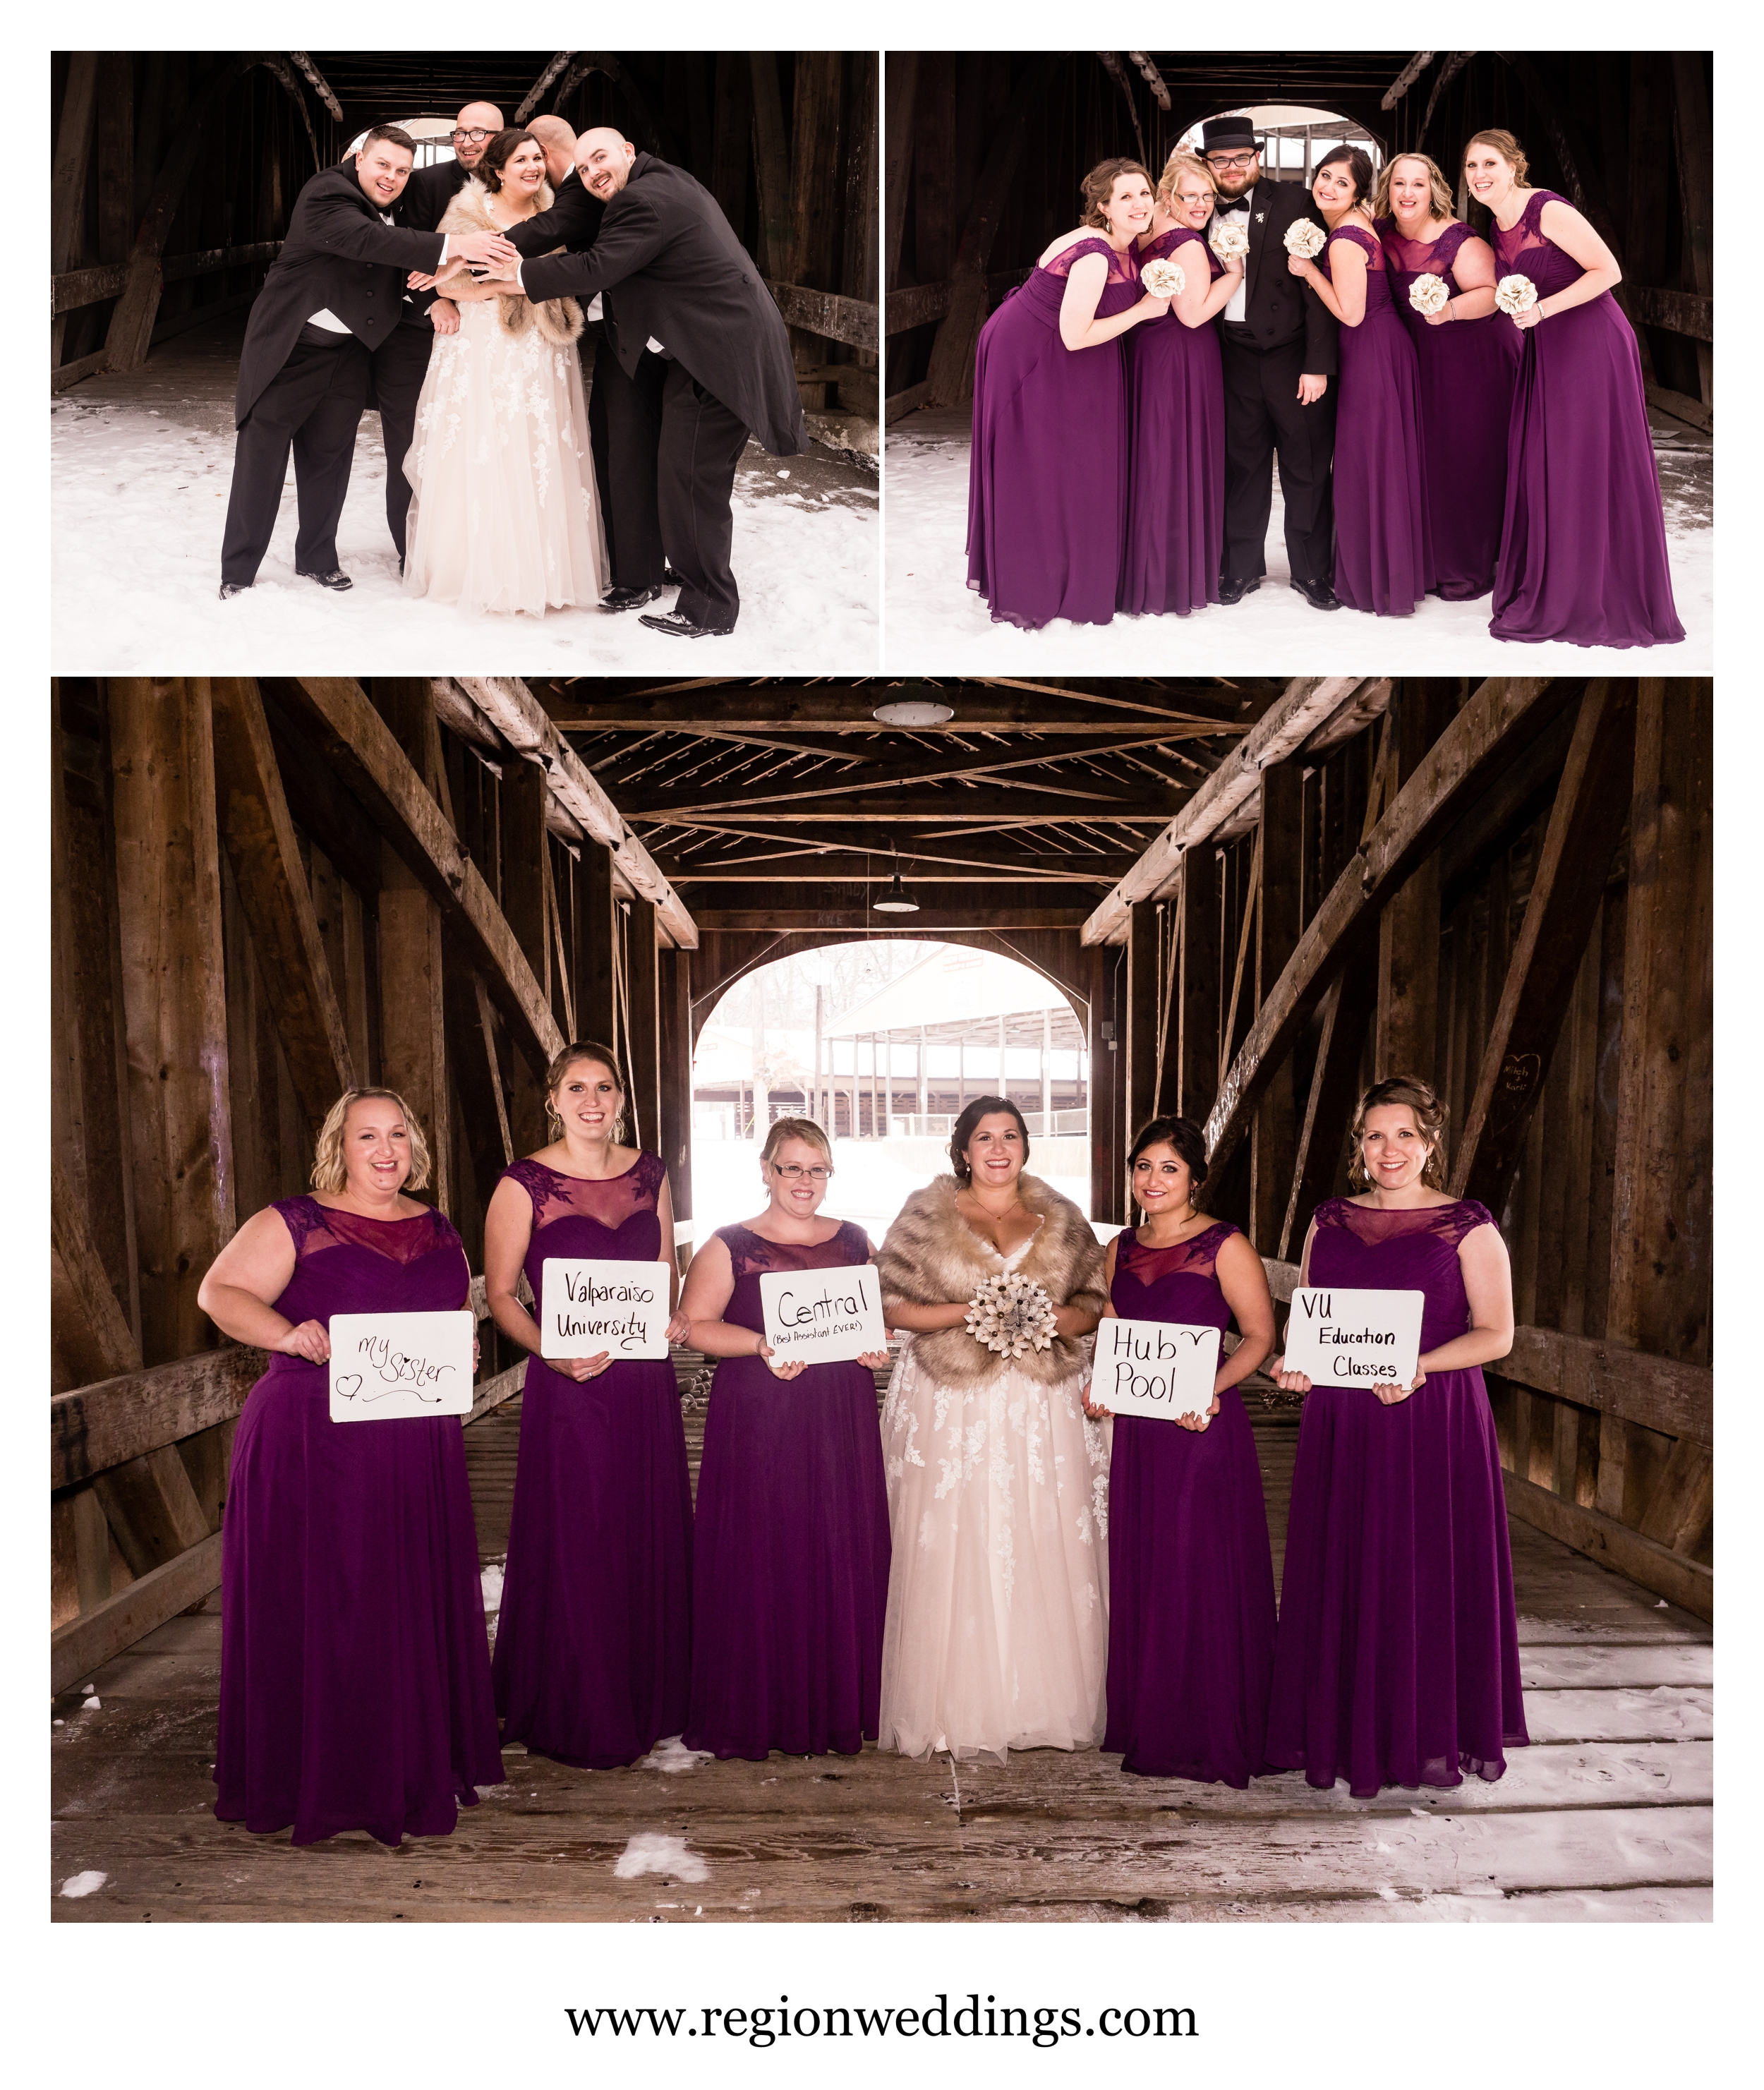 Wedding party fun at the Lake County Fairgrounds.